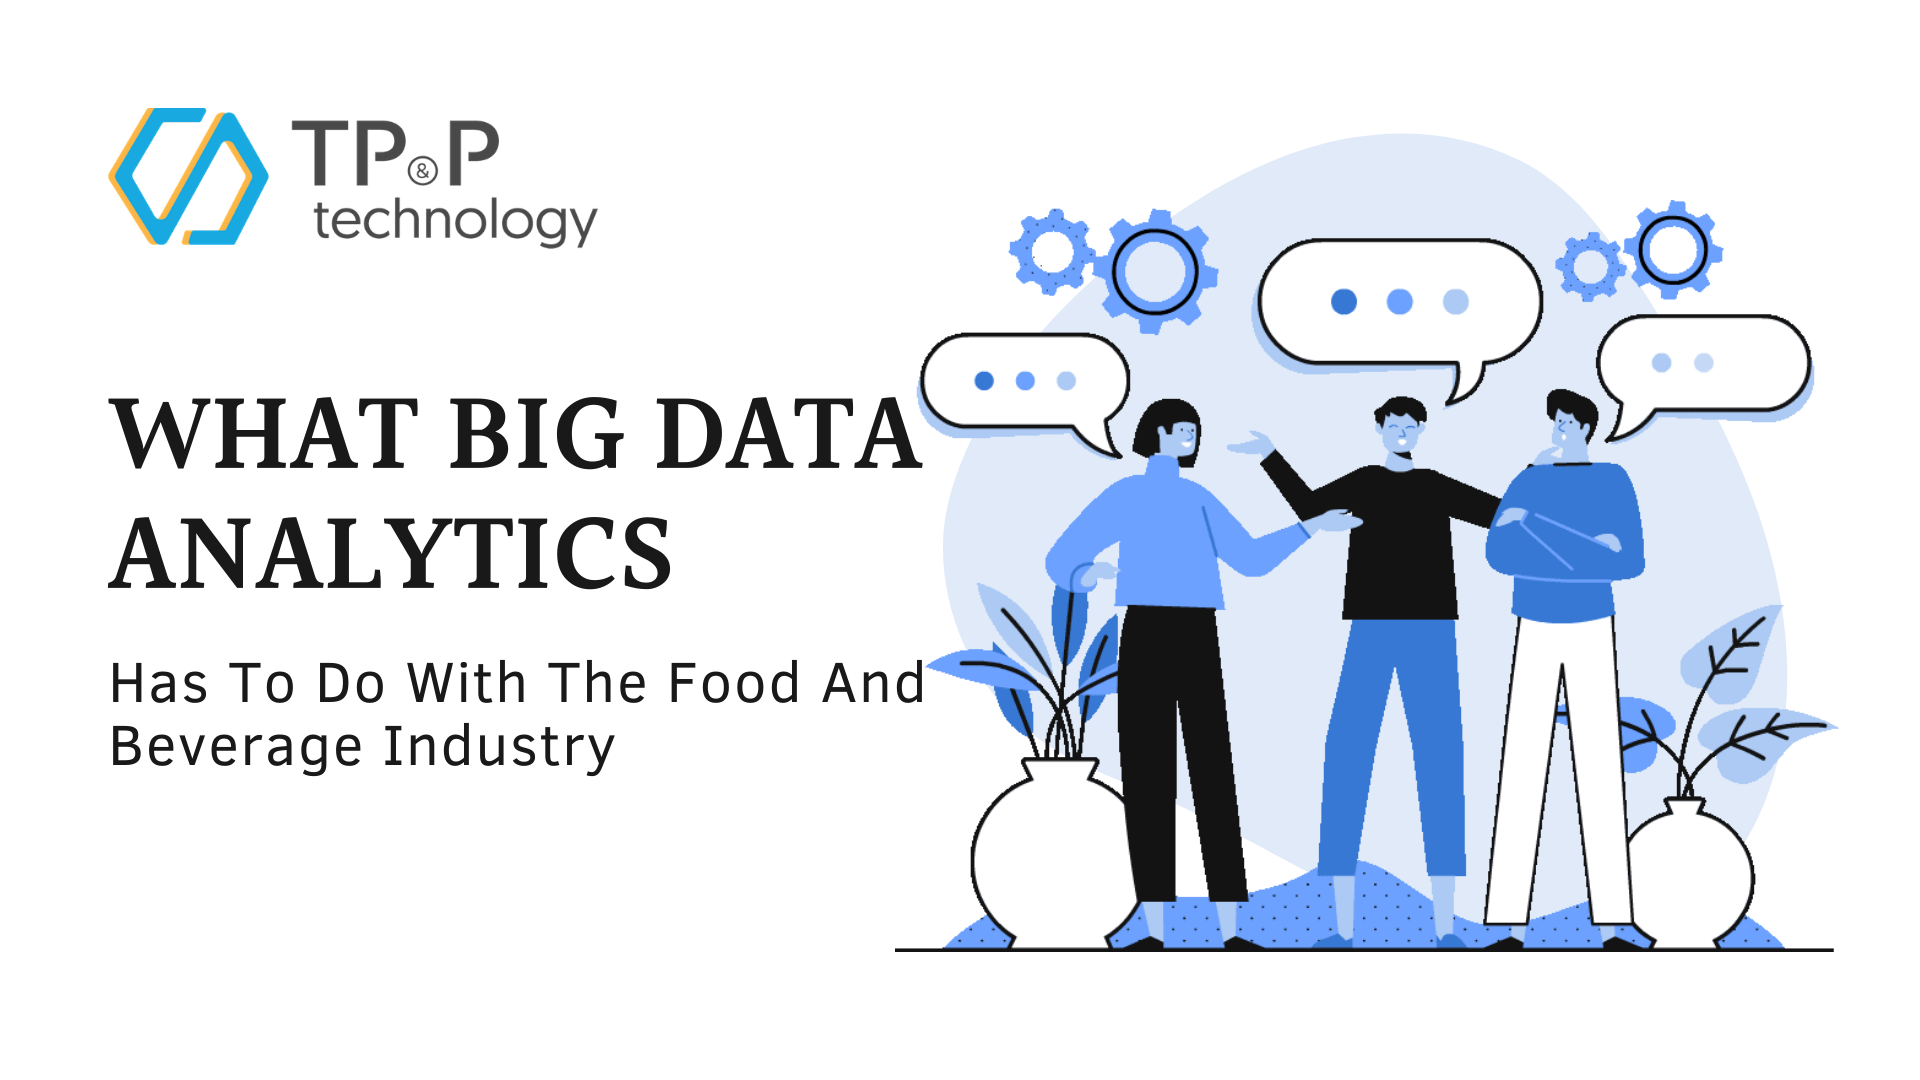 What Big Data Analytics Has To Do With The Food And Beverage Industry